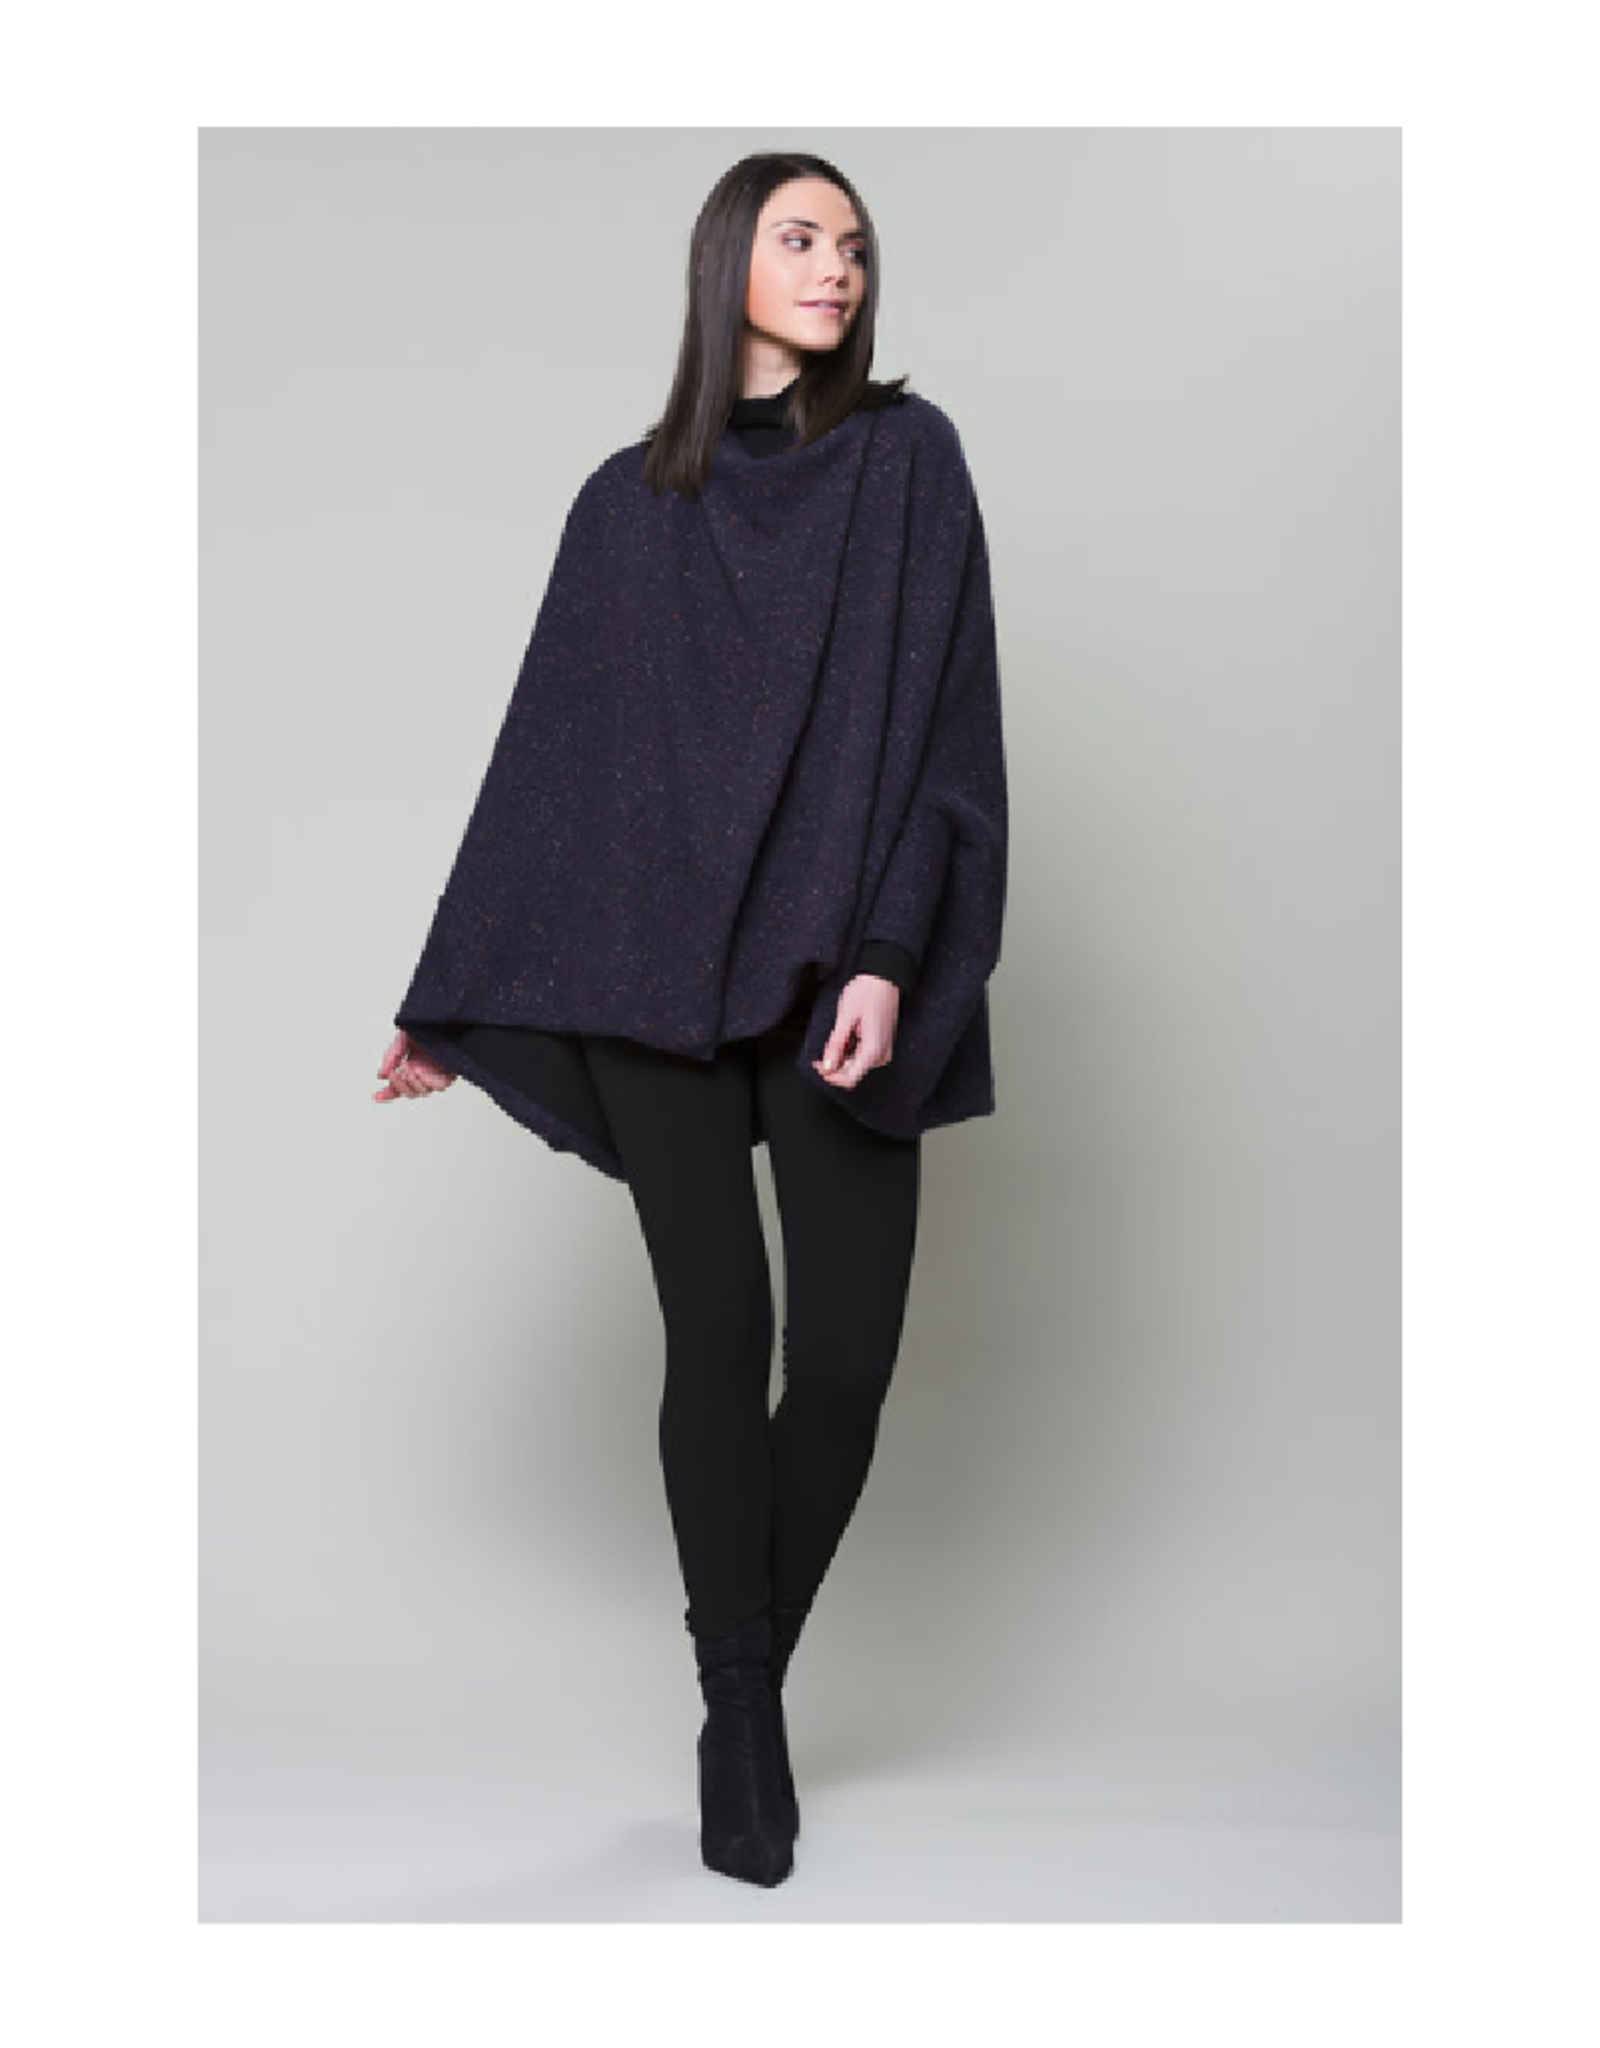 Ruelle Storm Poncho Combo Cardigan